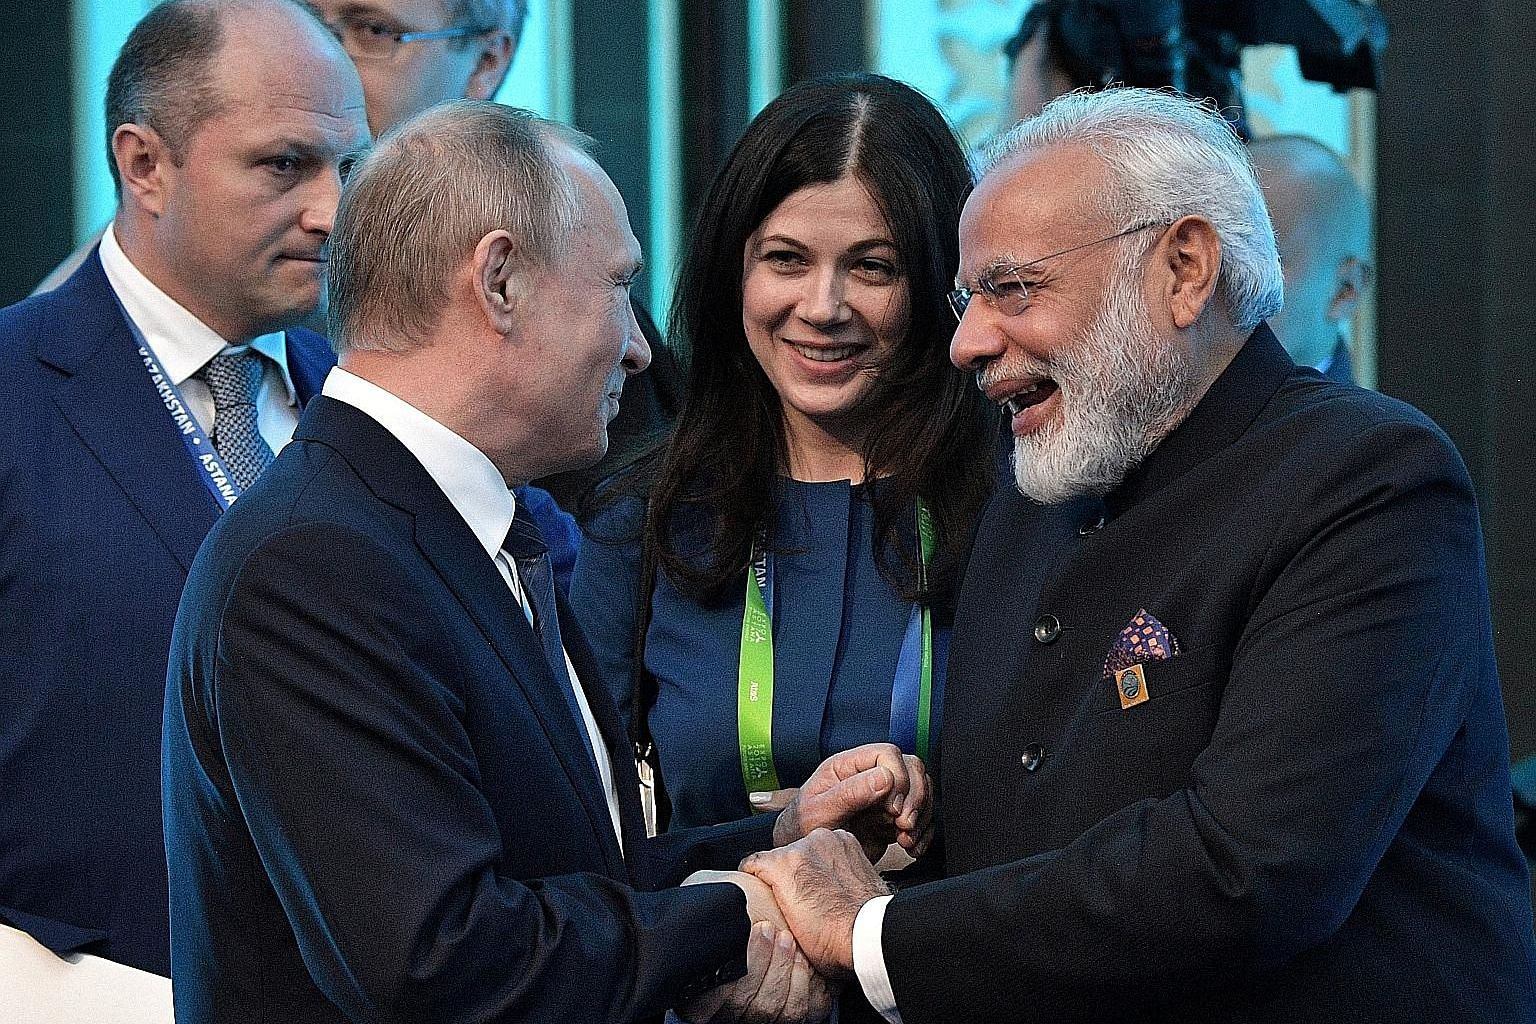 Indian Prime Minister Narendra Modi has just had a successful tour of Europe where he met Russian President Vladimir Putin last week. Mr Modi will be hoping for a similar good outcome when he meets President Donald Trump in the US later this month.